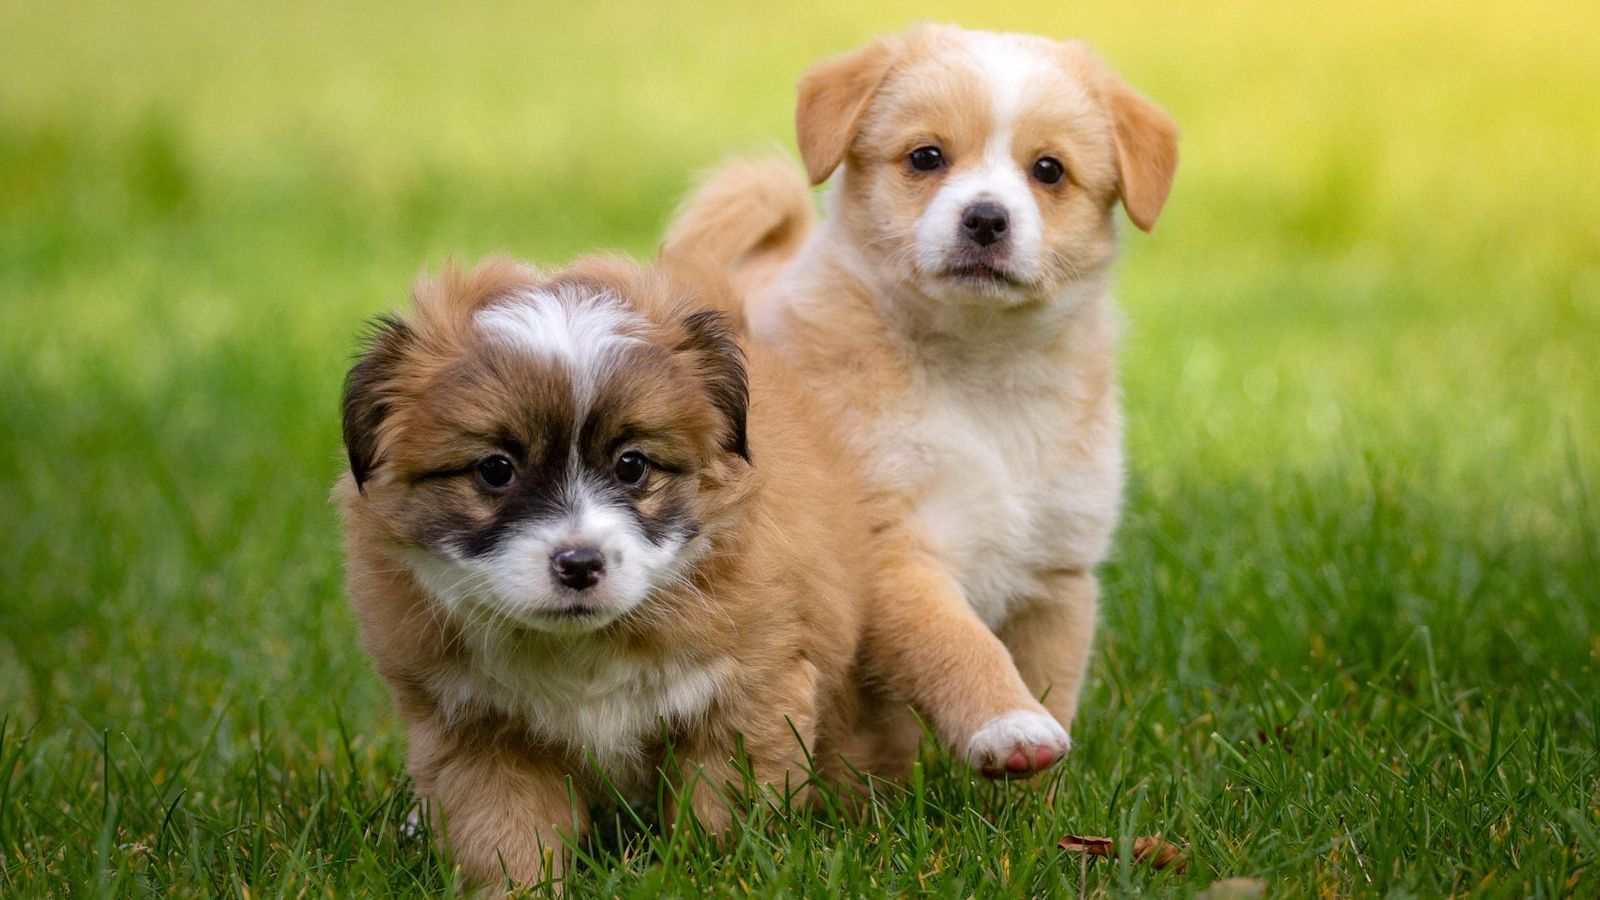 Decorate Your Home With Wallpaper of Cute Puppies